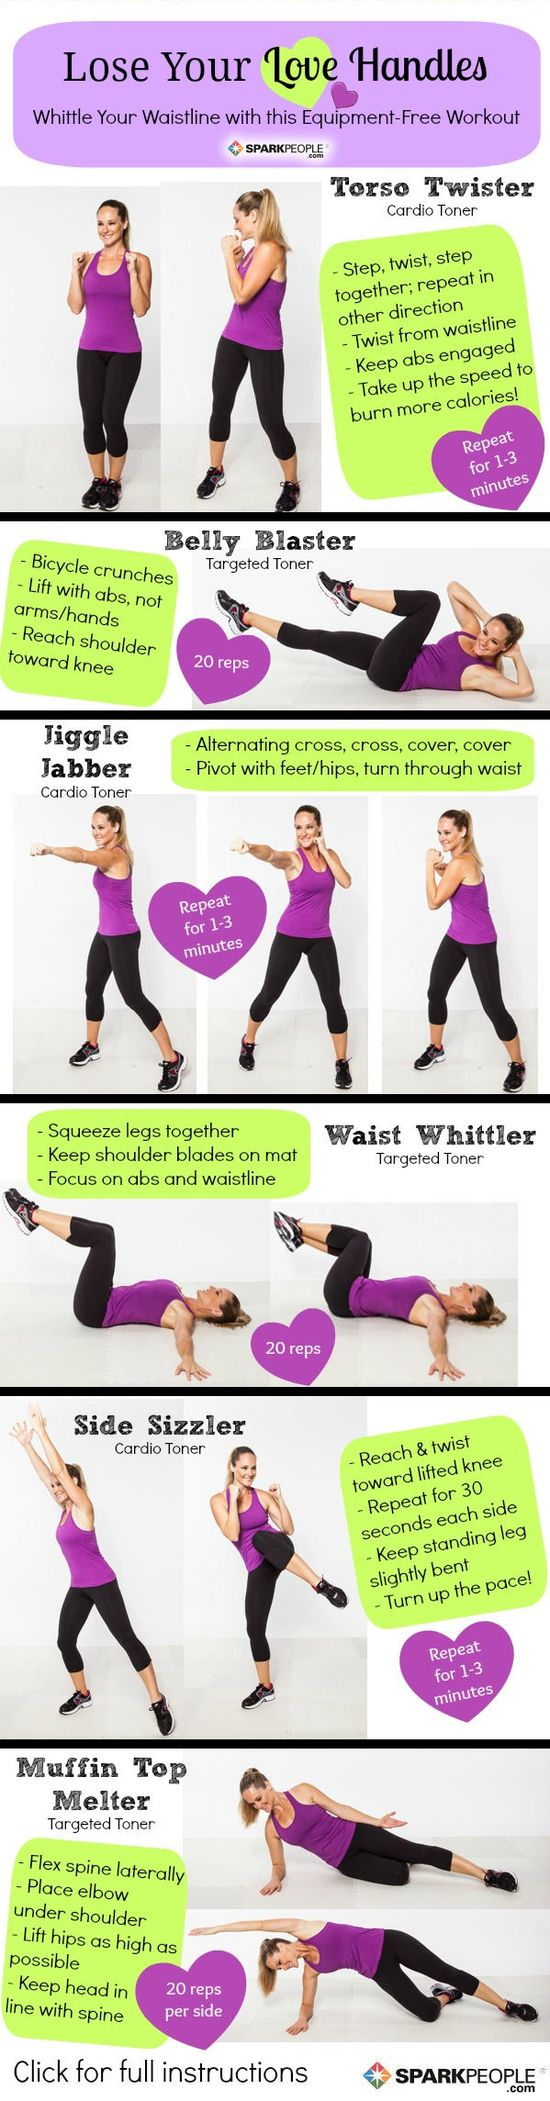 The 'Lose Your Love Handles' Workout @SparkPeople